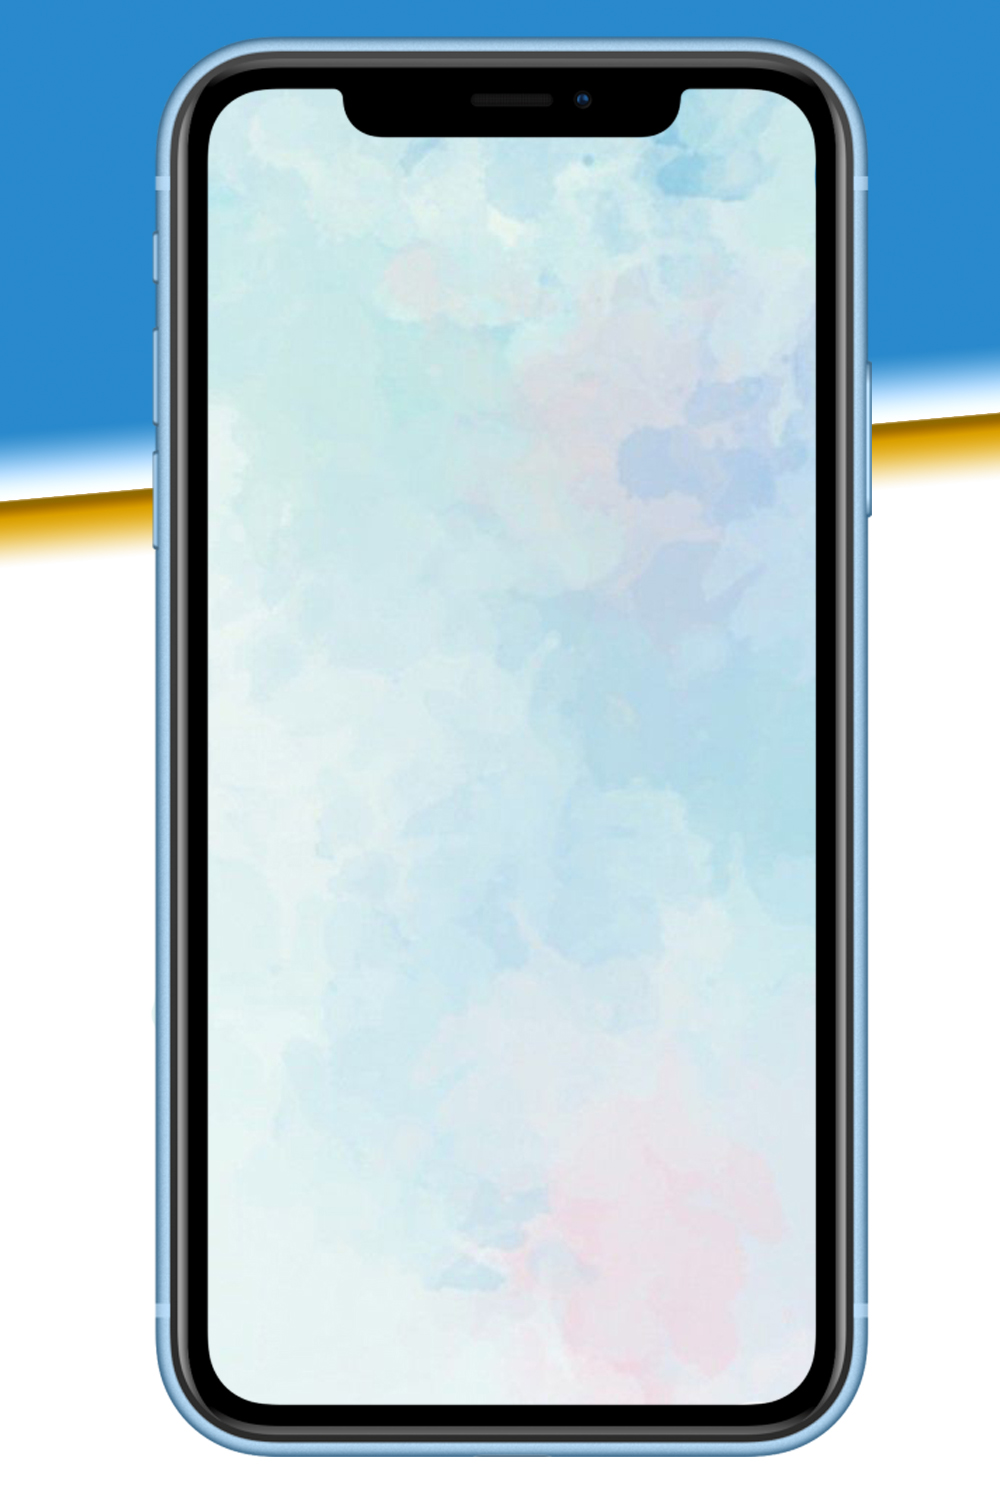 Iphone Notch Hiding Wallpaper Iphone Wallpapers In 2020 Iphone Wallpaper Images Iphone Wallpaper Best Iphone Wallpapers